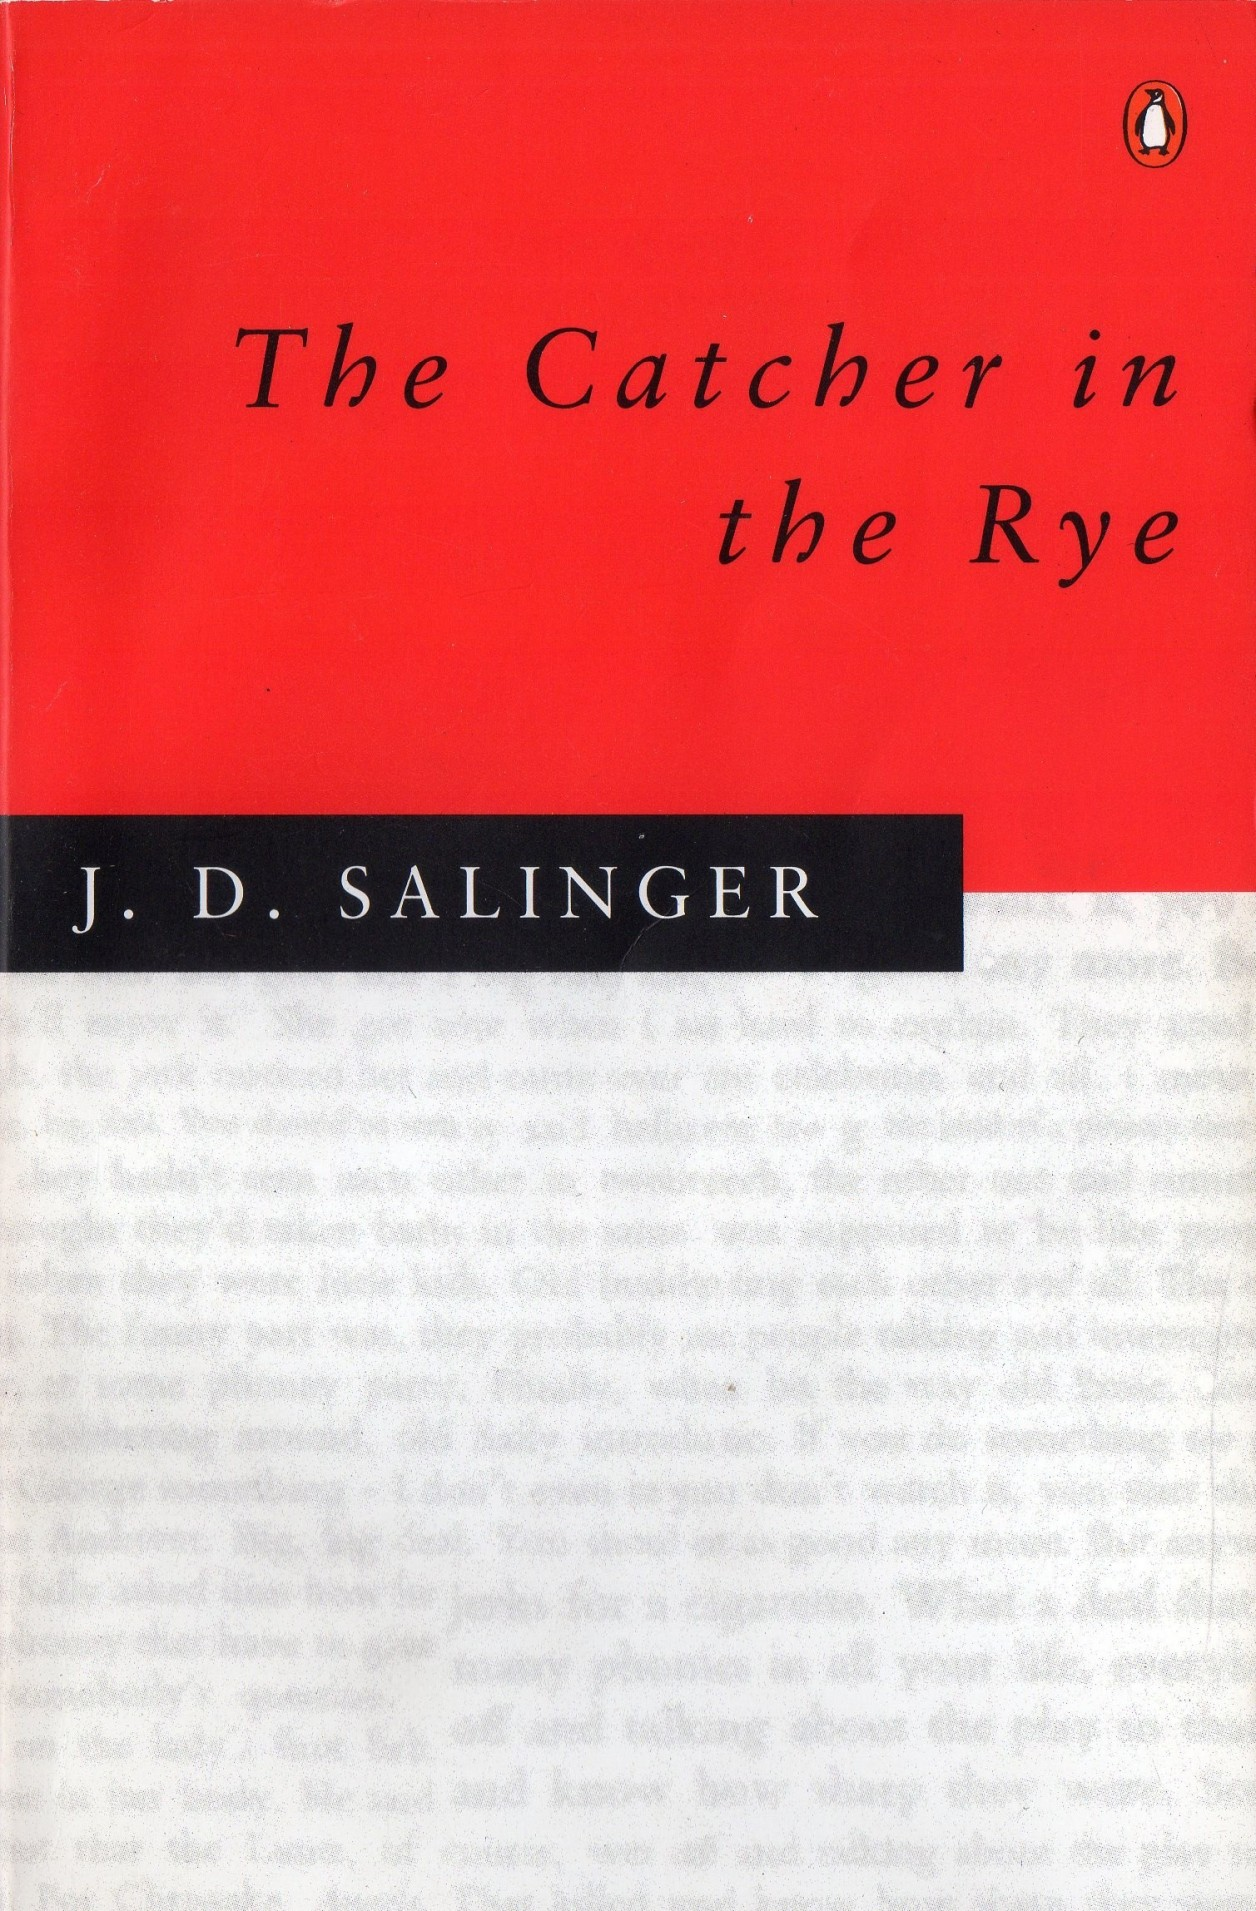 the holden and modern teenagers in the catcher in the rye a novel by j d salinger Also, salinger wanted to be a writer and go to hollywood, just as holden's brother db we could say, holden acts as a reflection of jd's younger self this book's audience relies on teenagers, since the novel has a teenage protagonist some thesis arrive to the conclusion that everyone needs to read the catcher in the rye or a similar story to become psychologically mature.